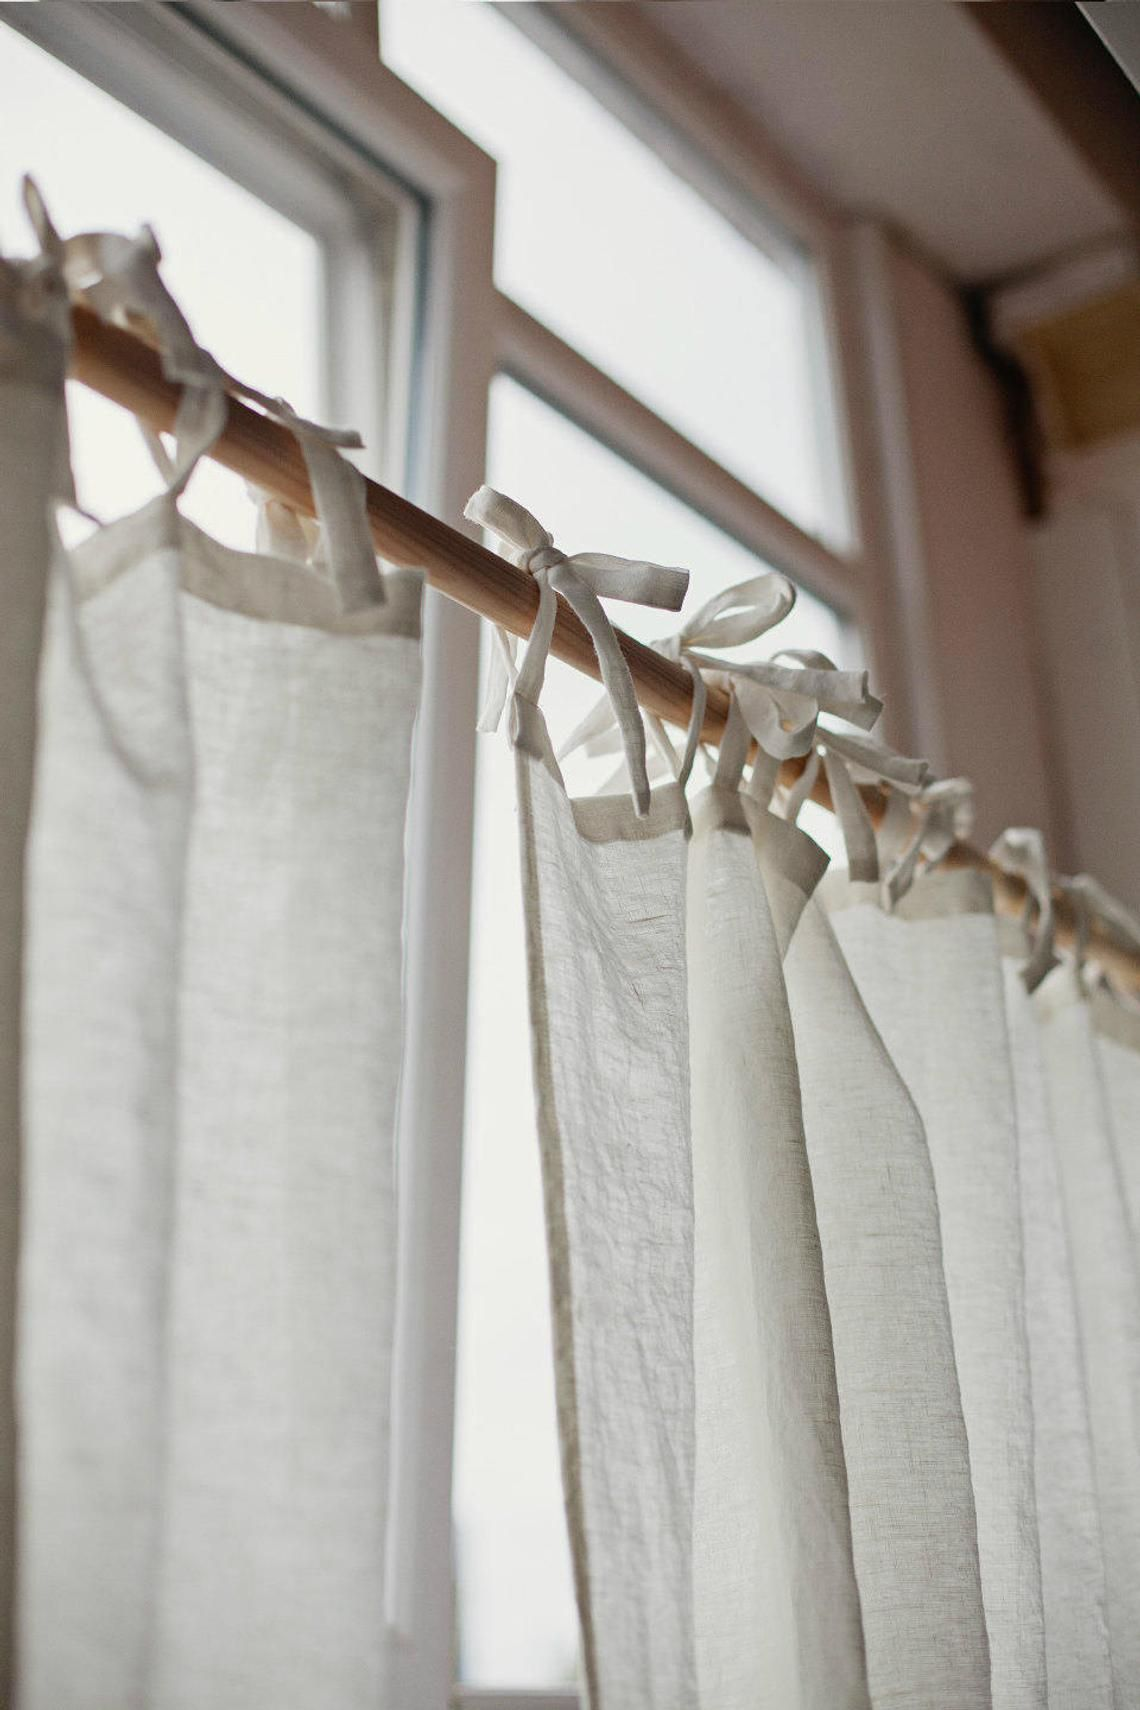 Tie Top Linen Curtain Panel Various Colours Semi Sheer Window Shower Or Door Curtain Custom Rod Drapes With Ties Linen Curtain Panels Curtains Diy Closet Doors